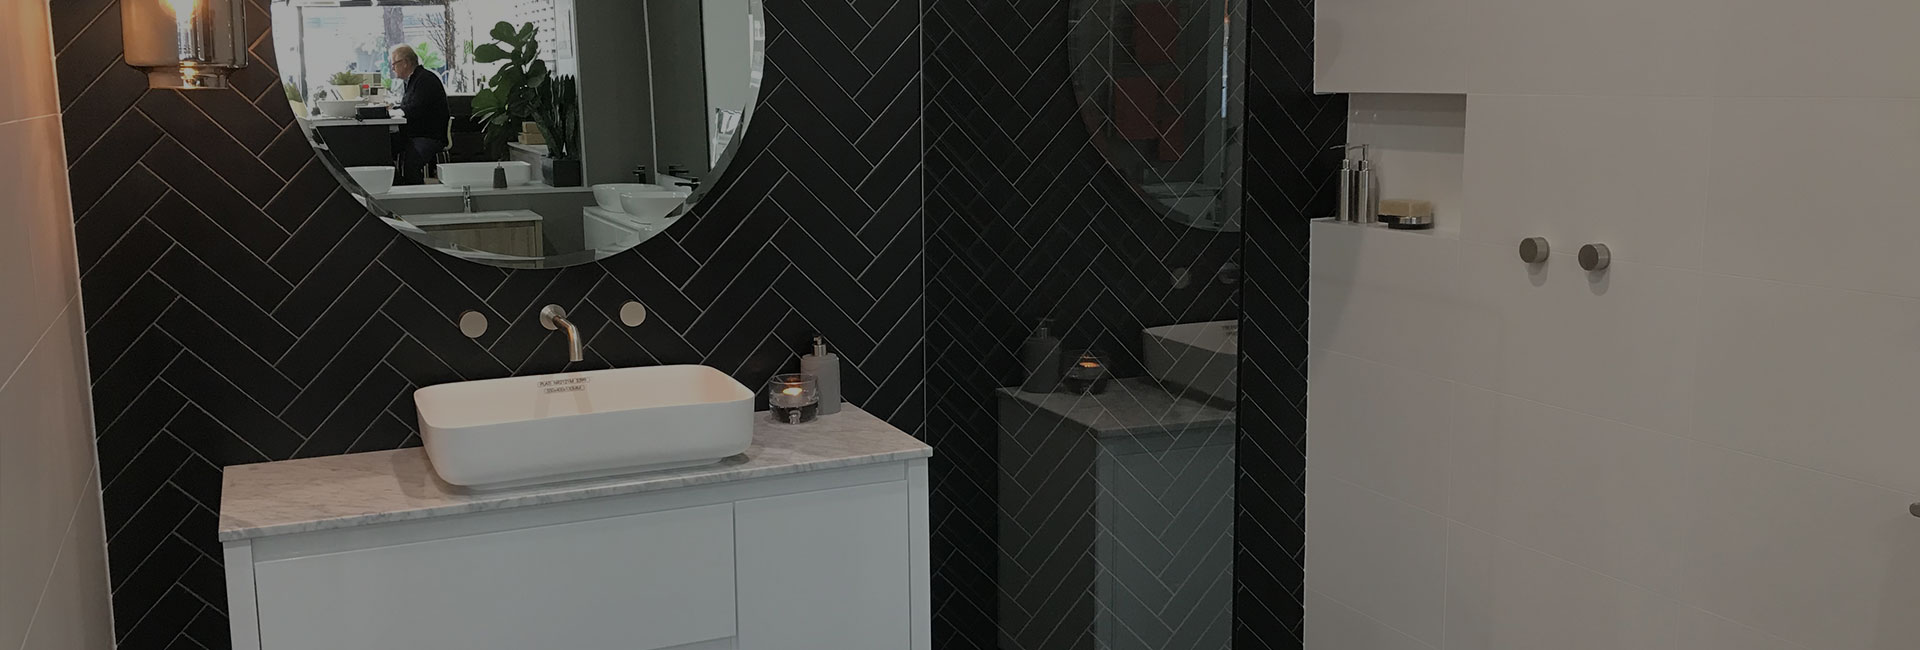 Bathroom Renovation Adelaide